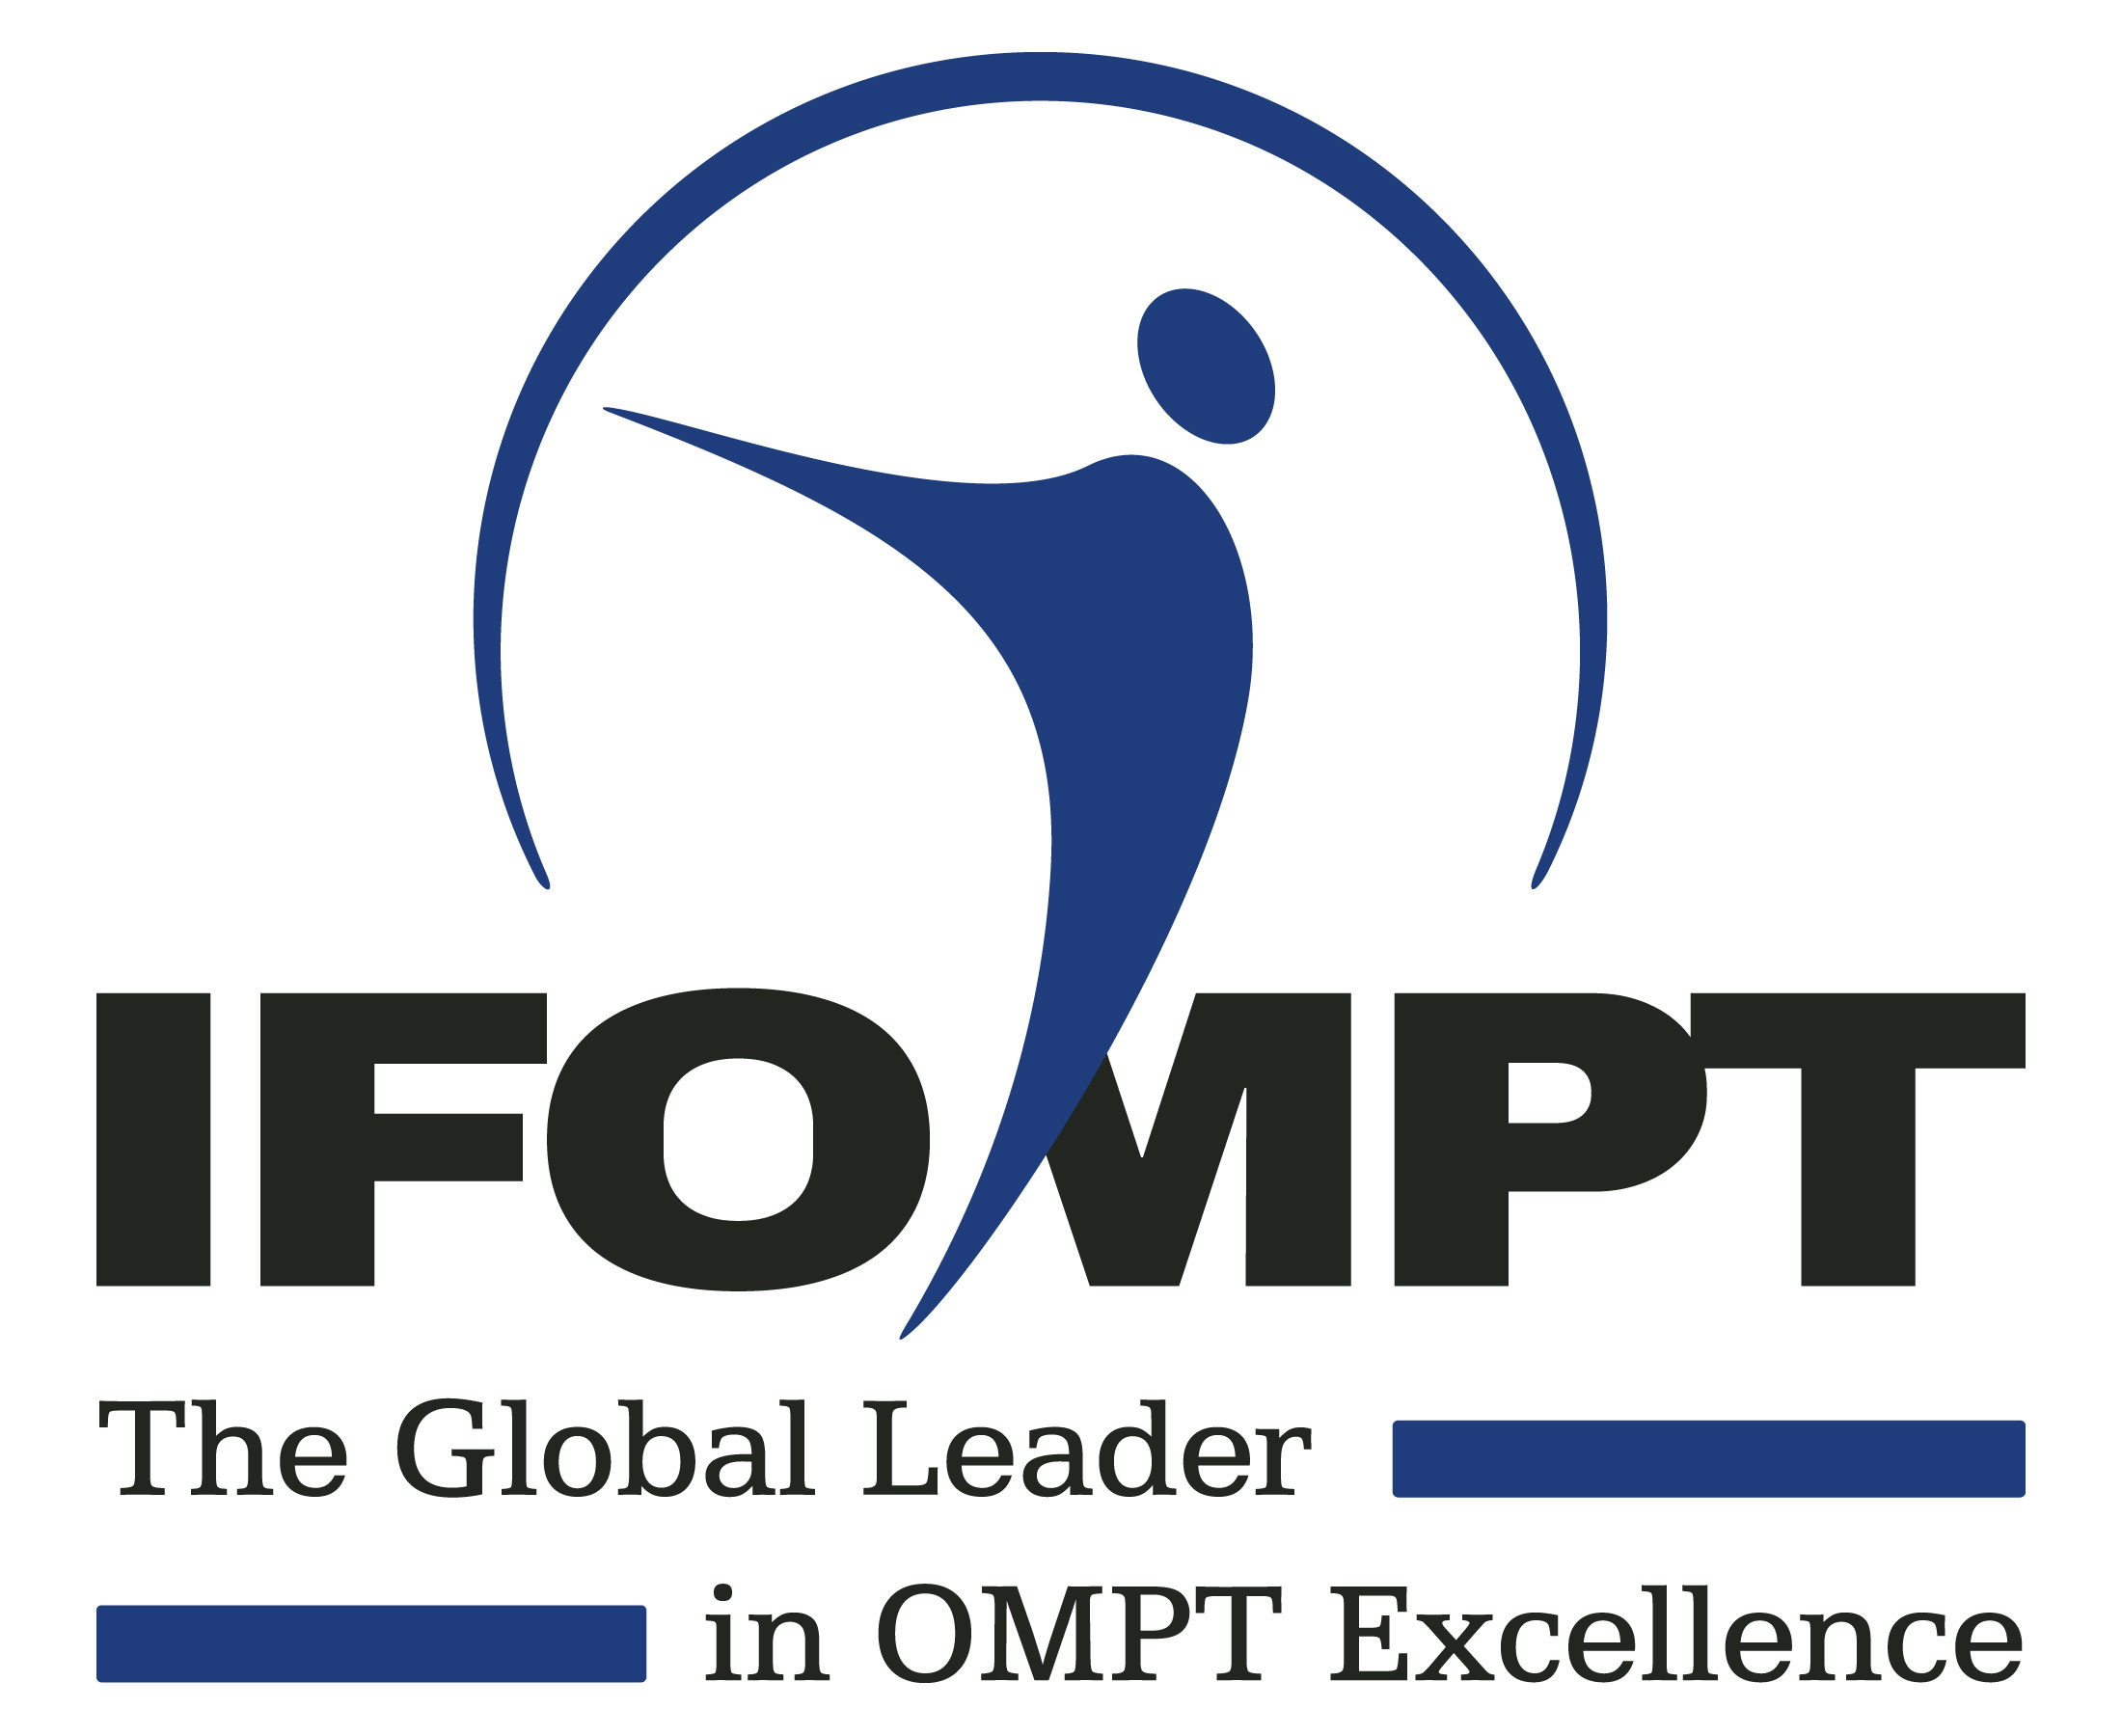 IFOMPT_logo_RGB_2000pxW copy 2.JPG